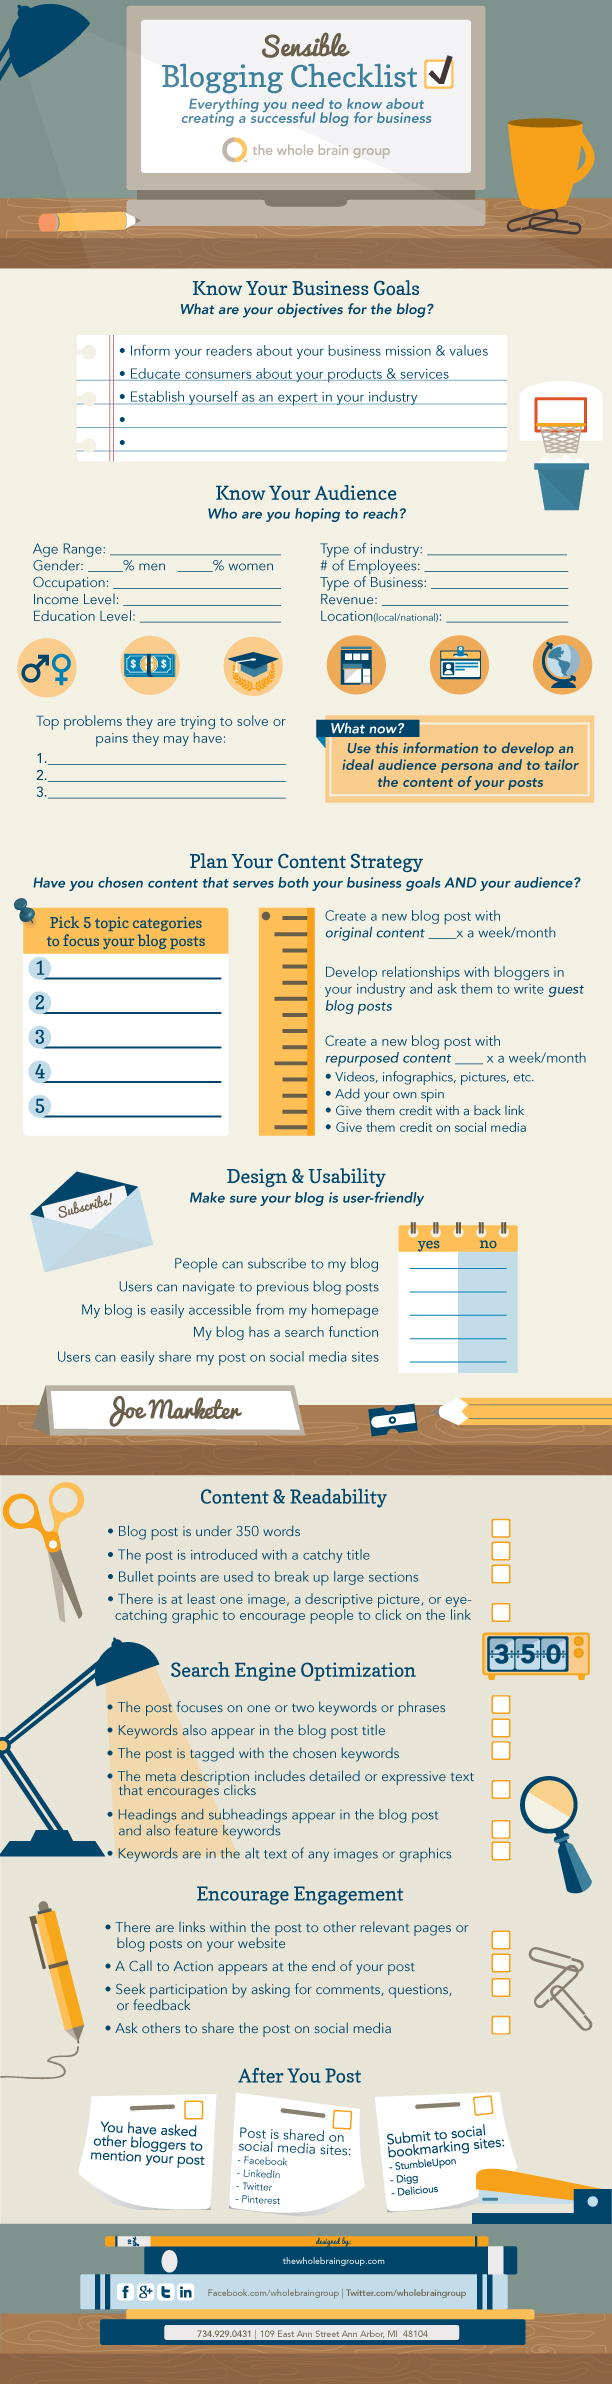 18. Sensible Blogging Checklist For Businesses [INFOGRAPHIC]